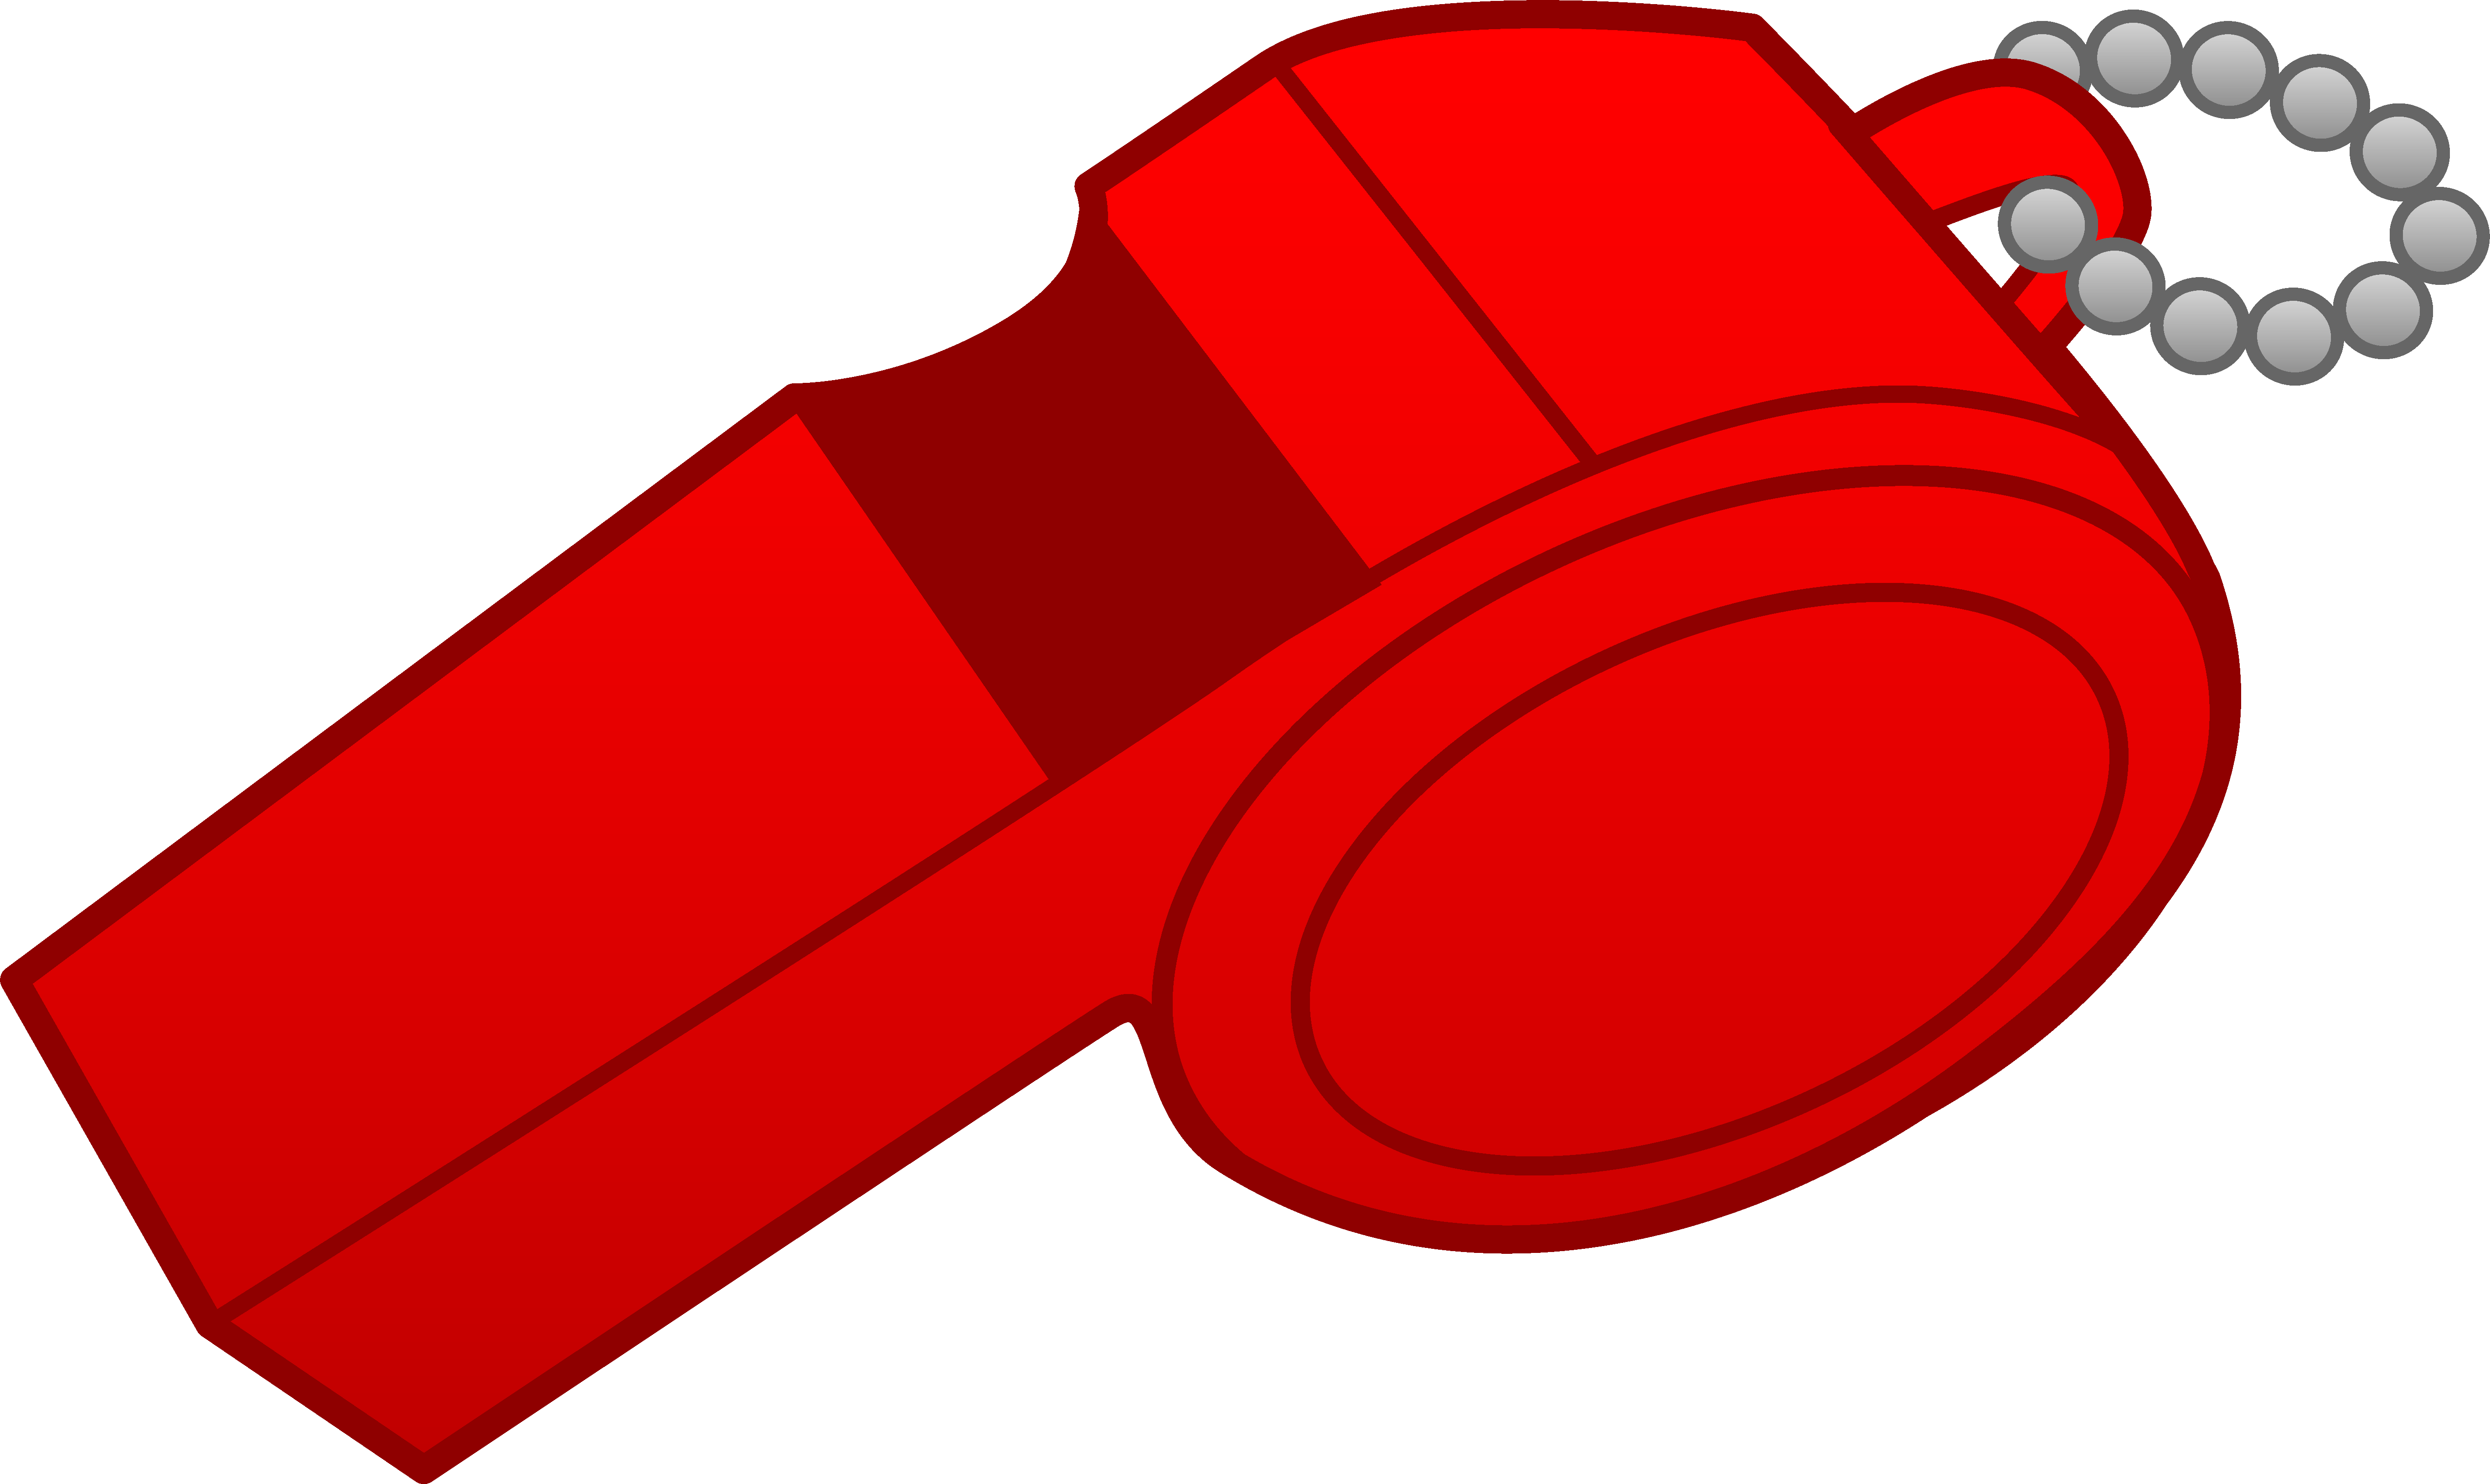 Coach clipart ref whistle. Free cliparts download clip